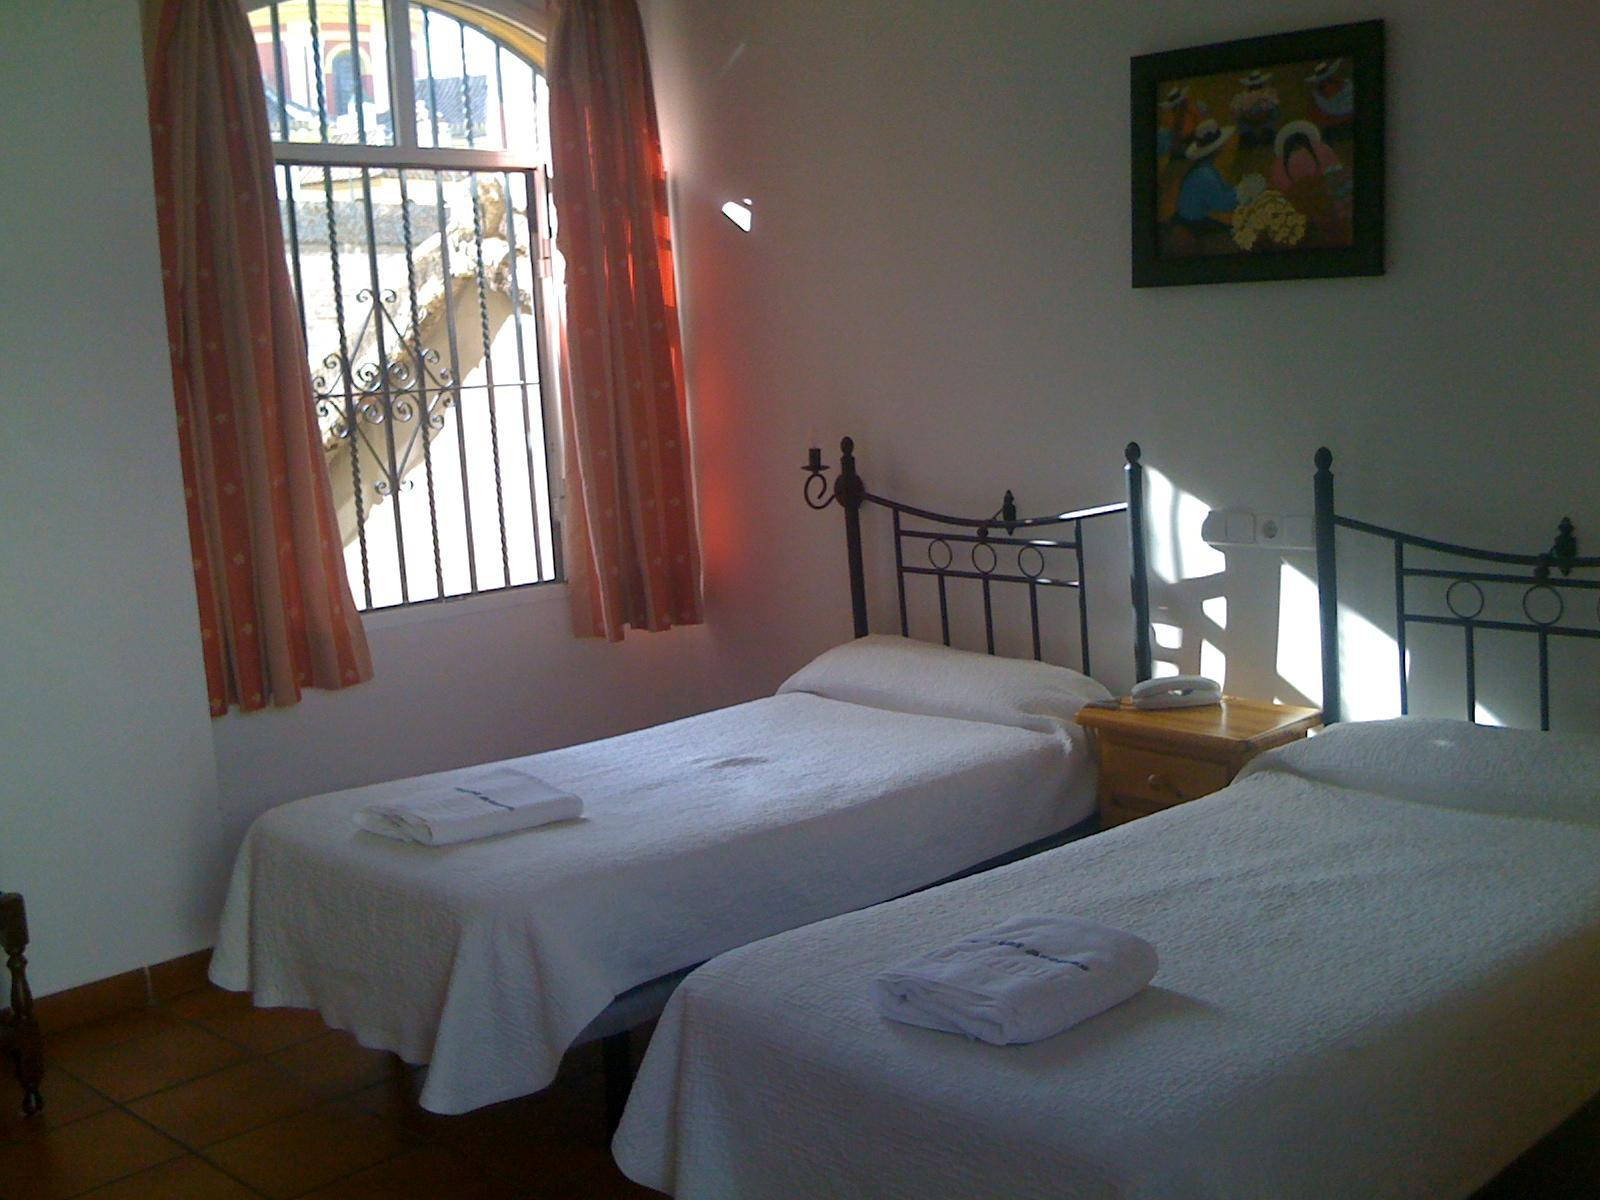 Quarto Triplo - 3 Camas Individuais (Triple Room - 3 Single Beds)